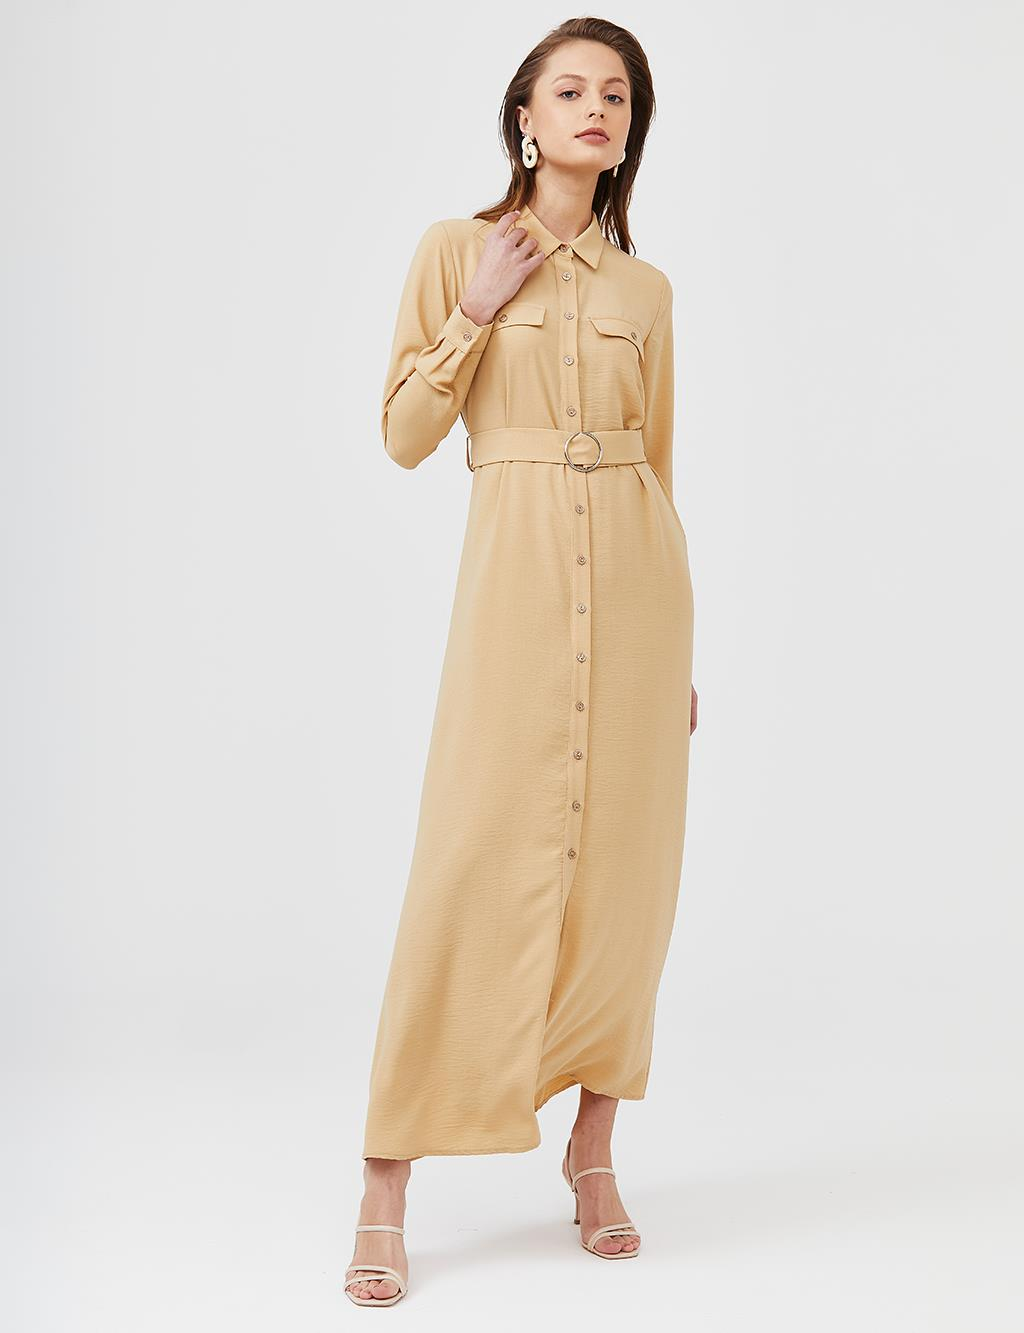 KYR Belted Maxi Dress B21 83016 Beige